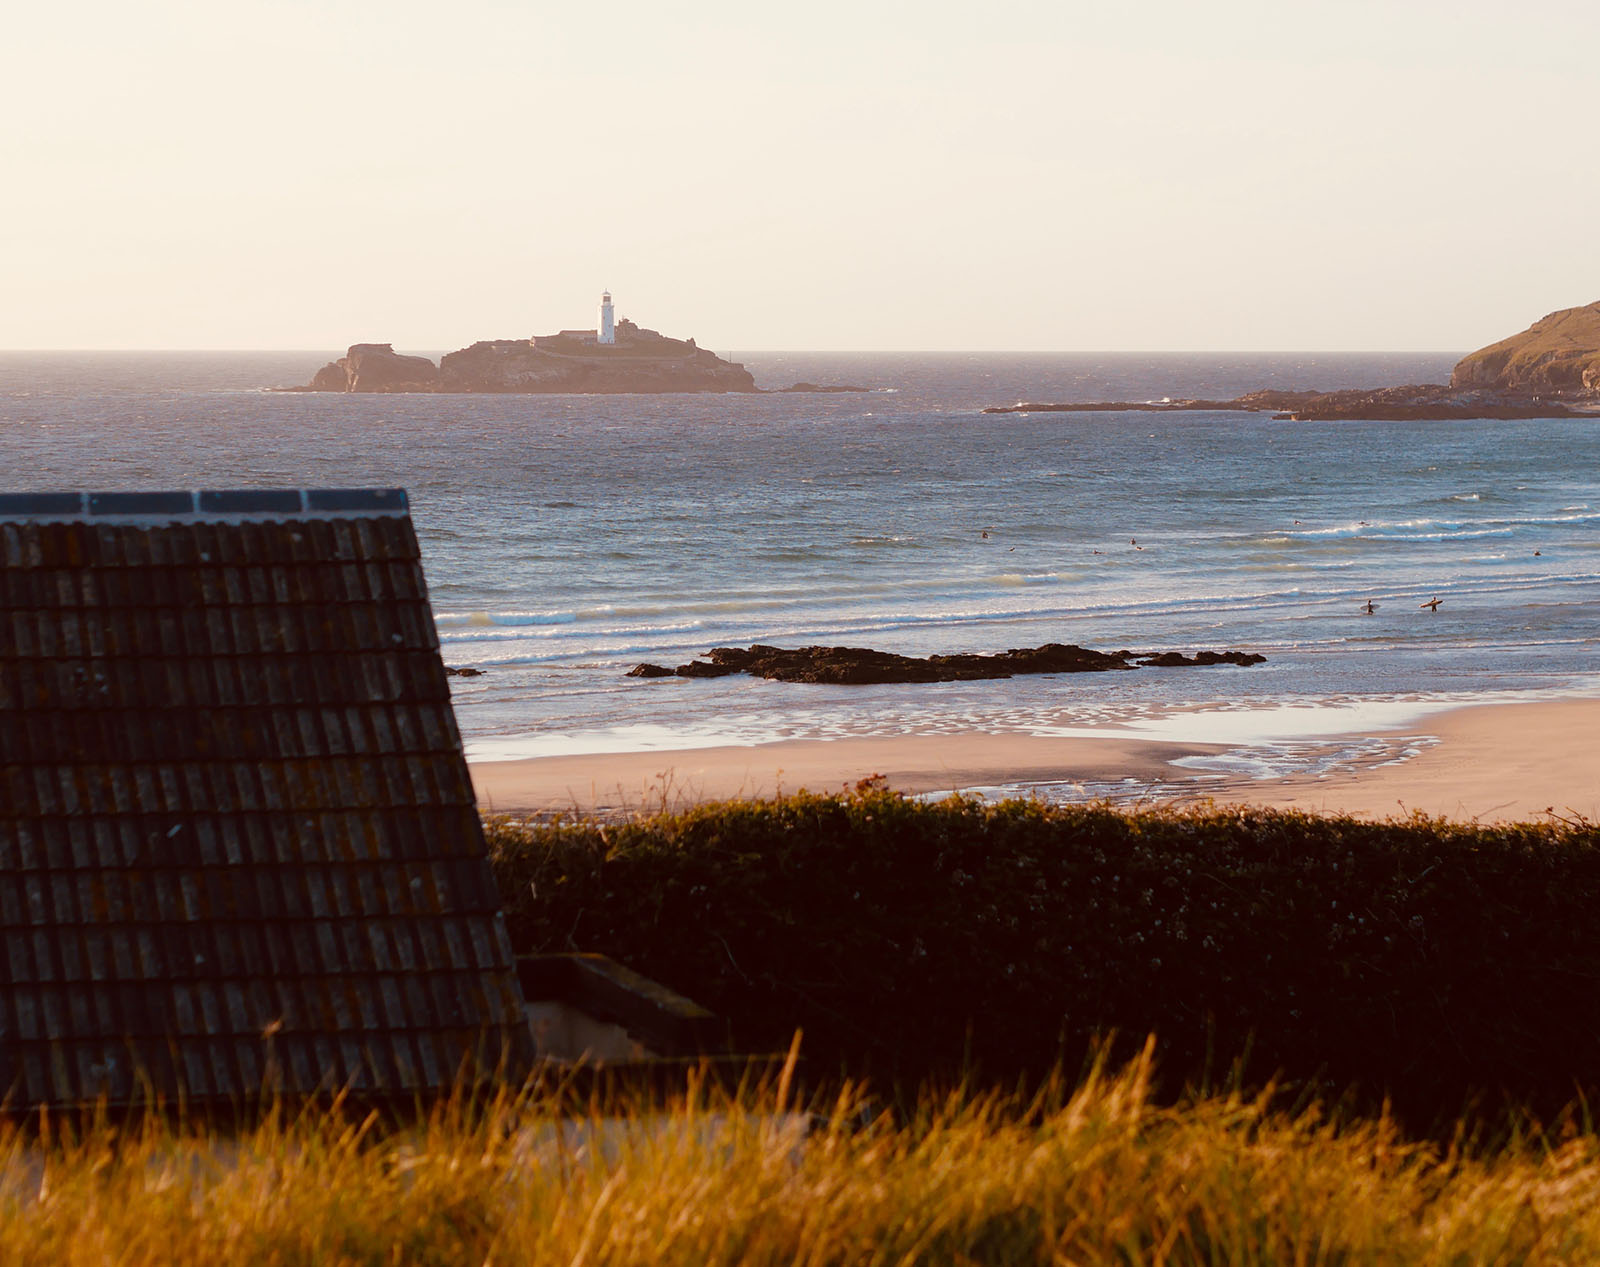 Golden hour at Godrevy beach.